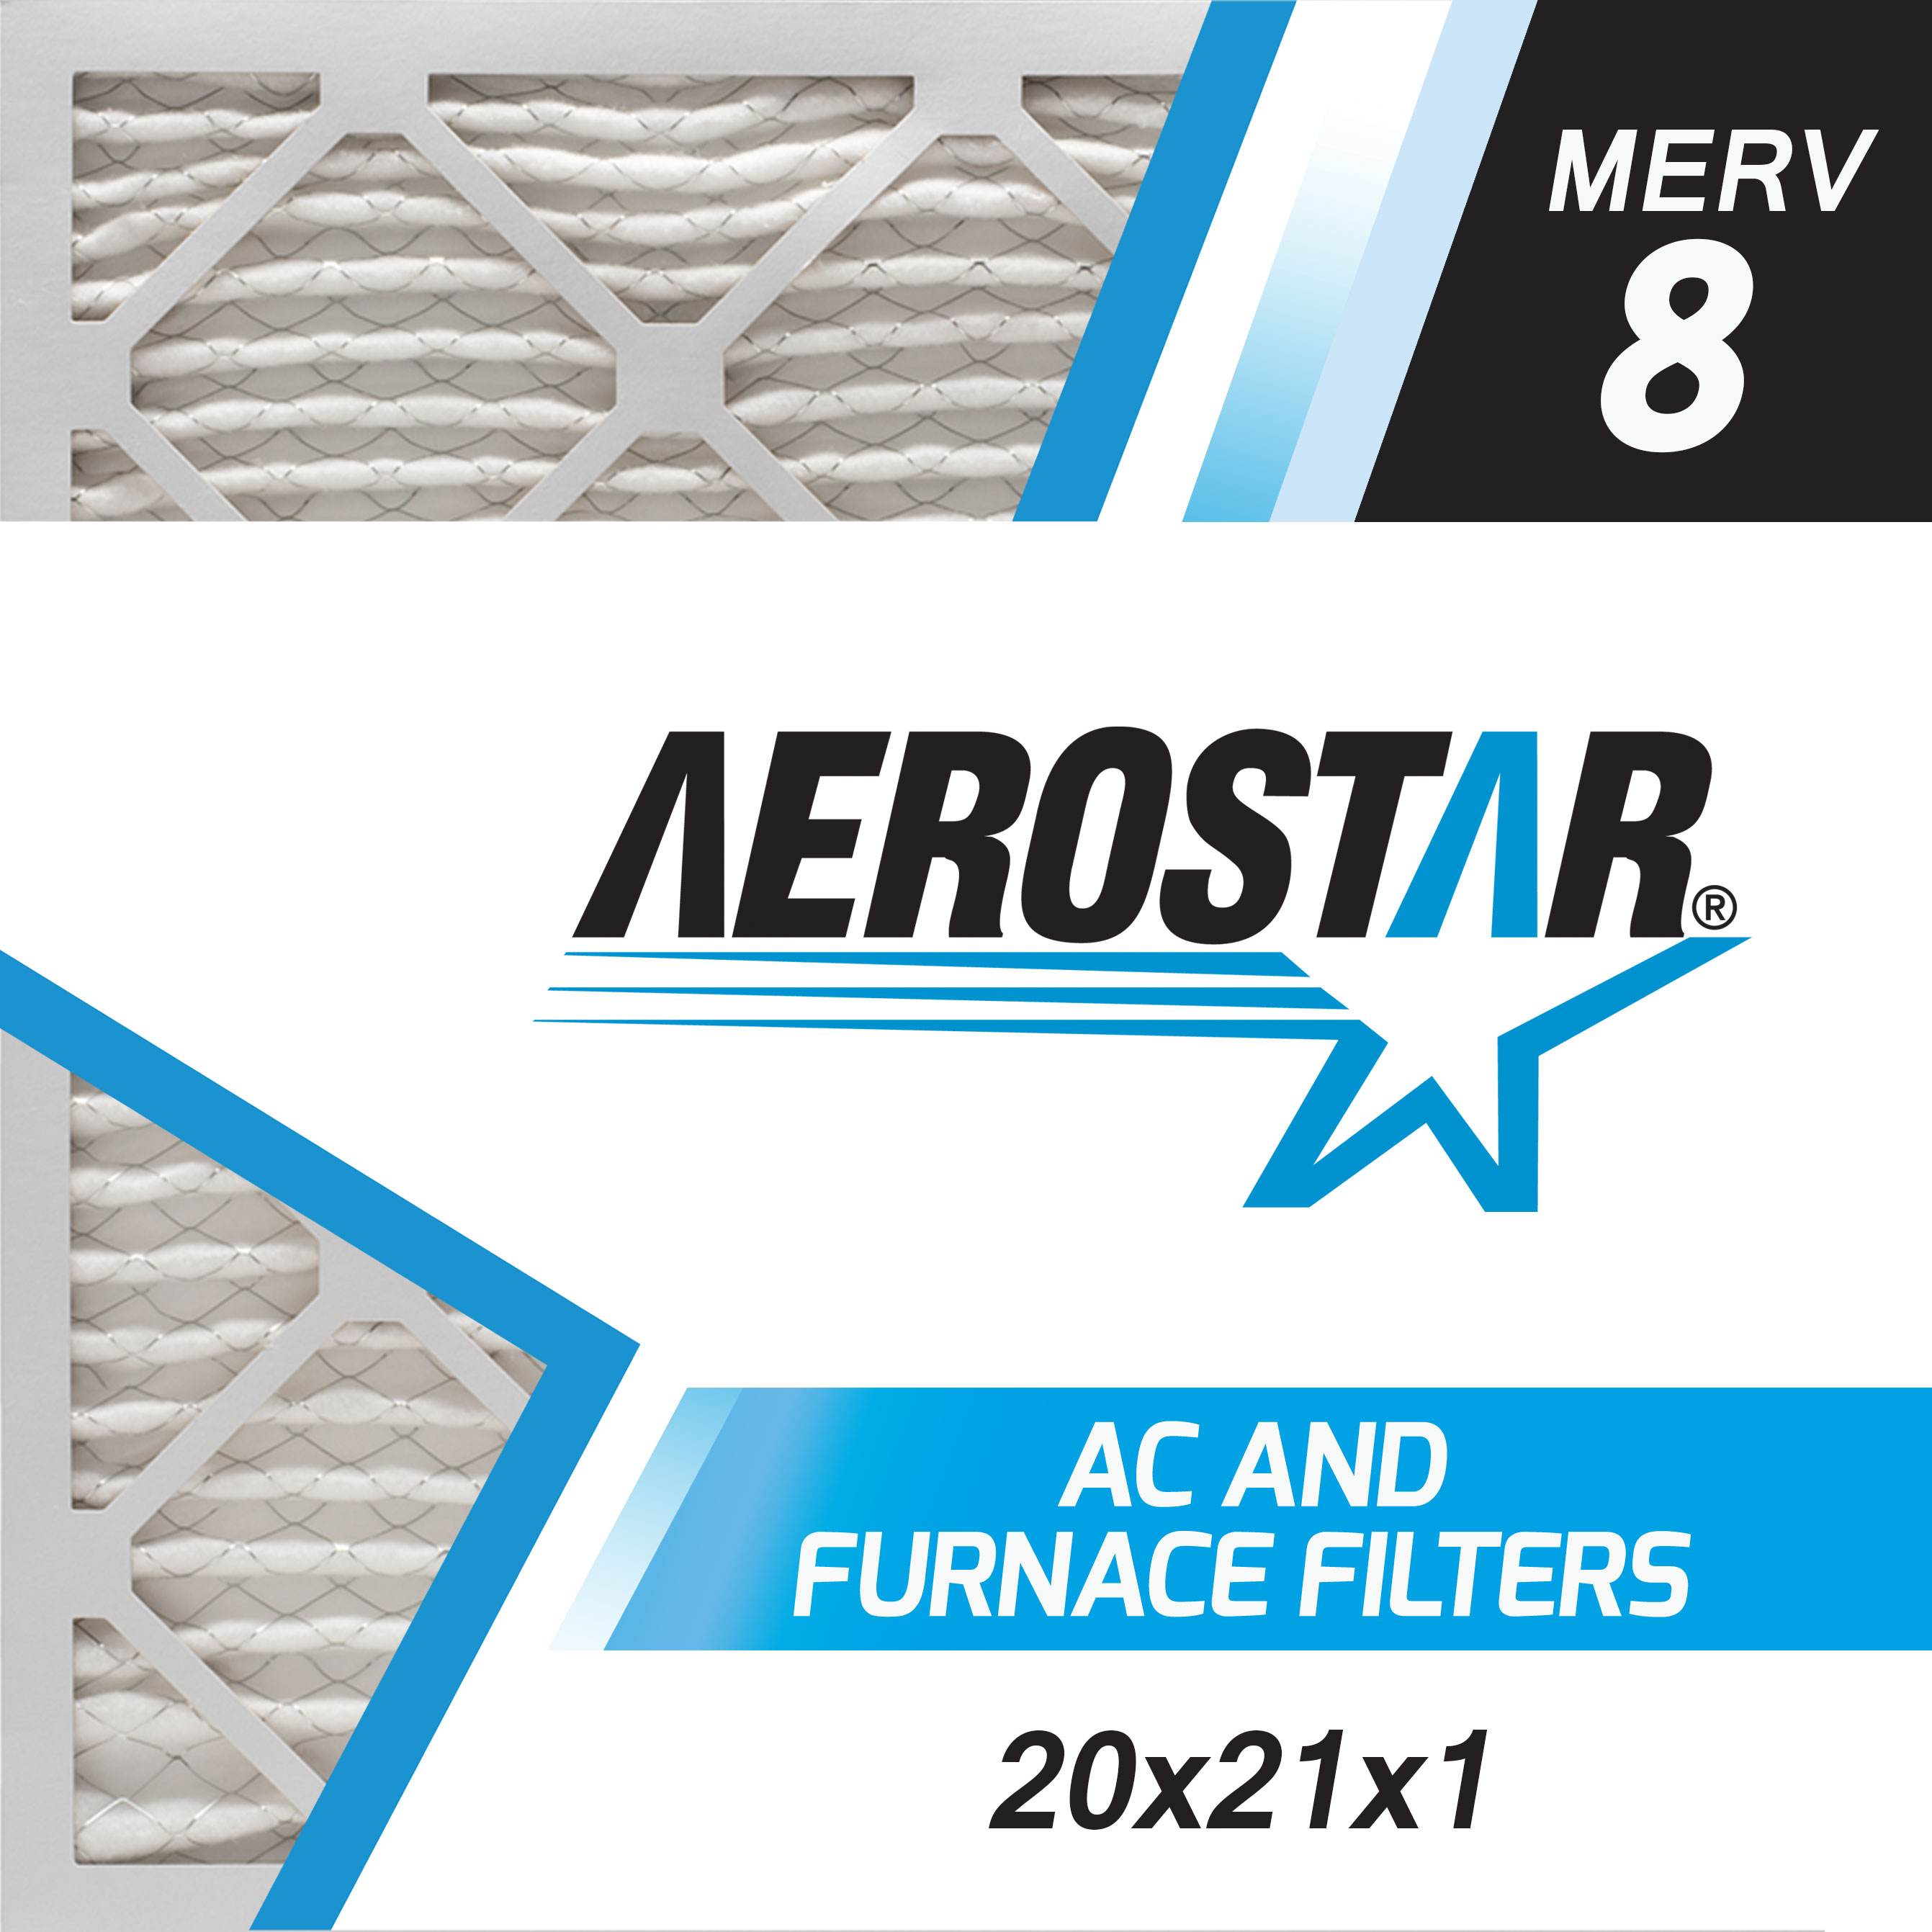 Nordic Pure 20x21x1 Exact MERV 11 Pleated AC Furnace Air Filters 3 Pack